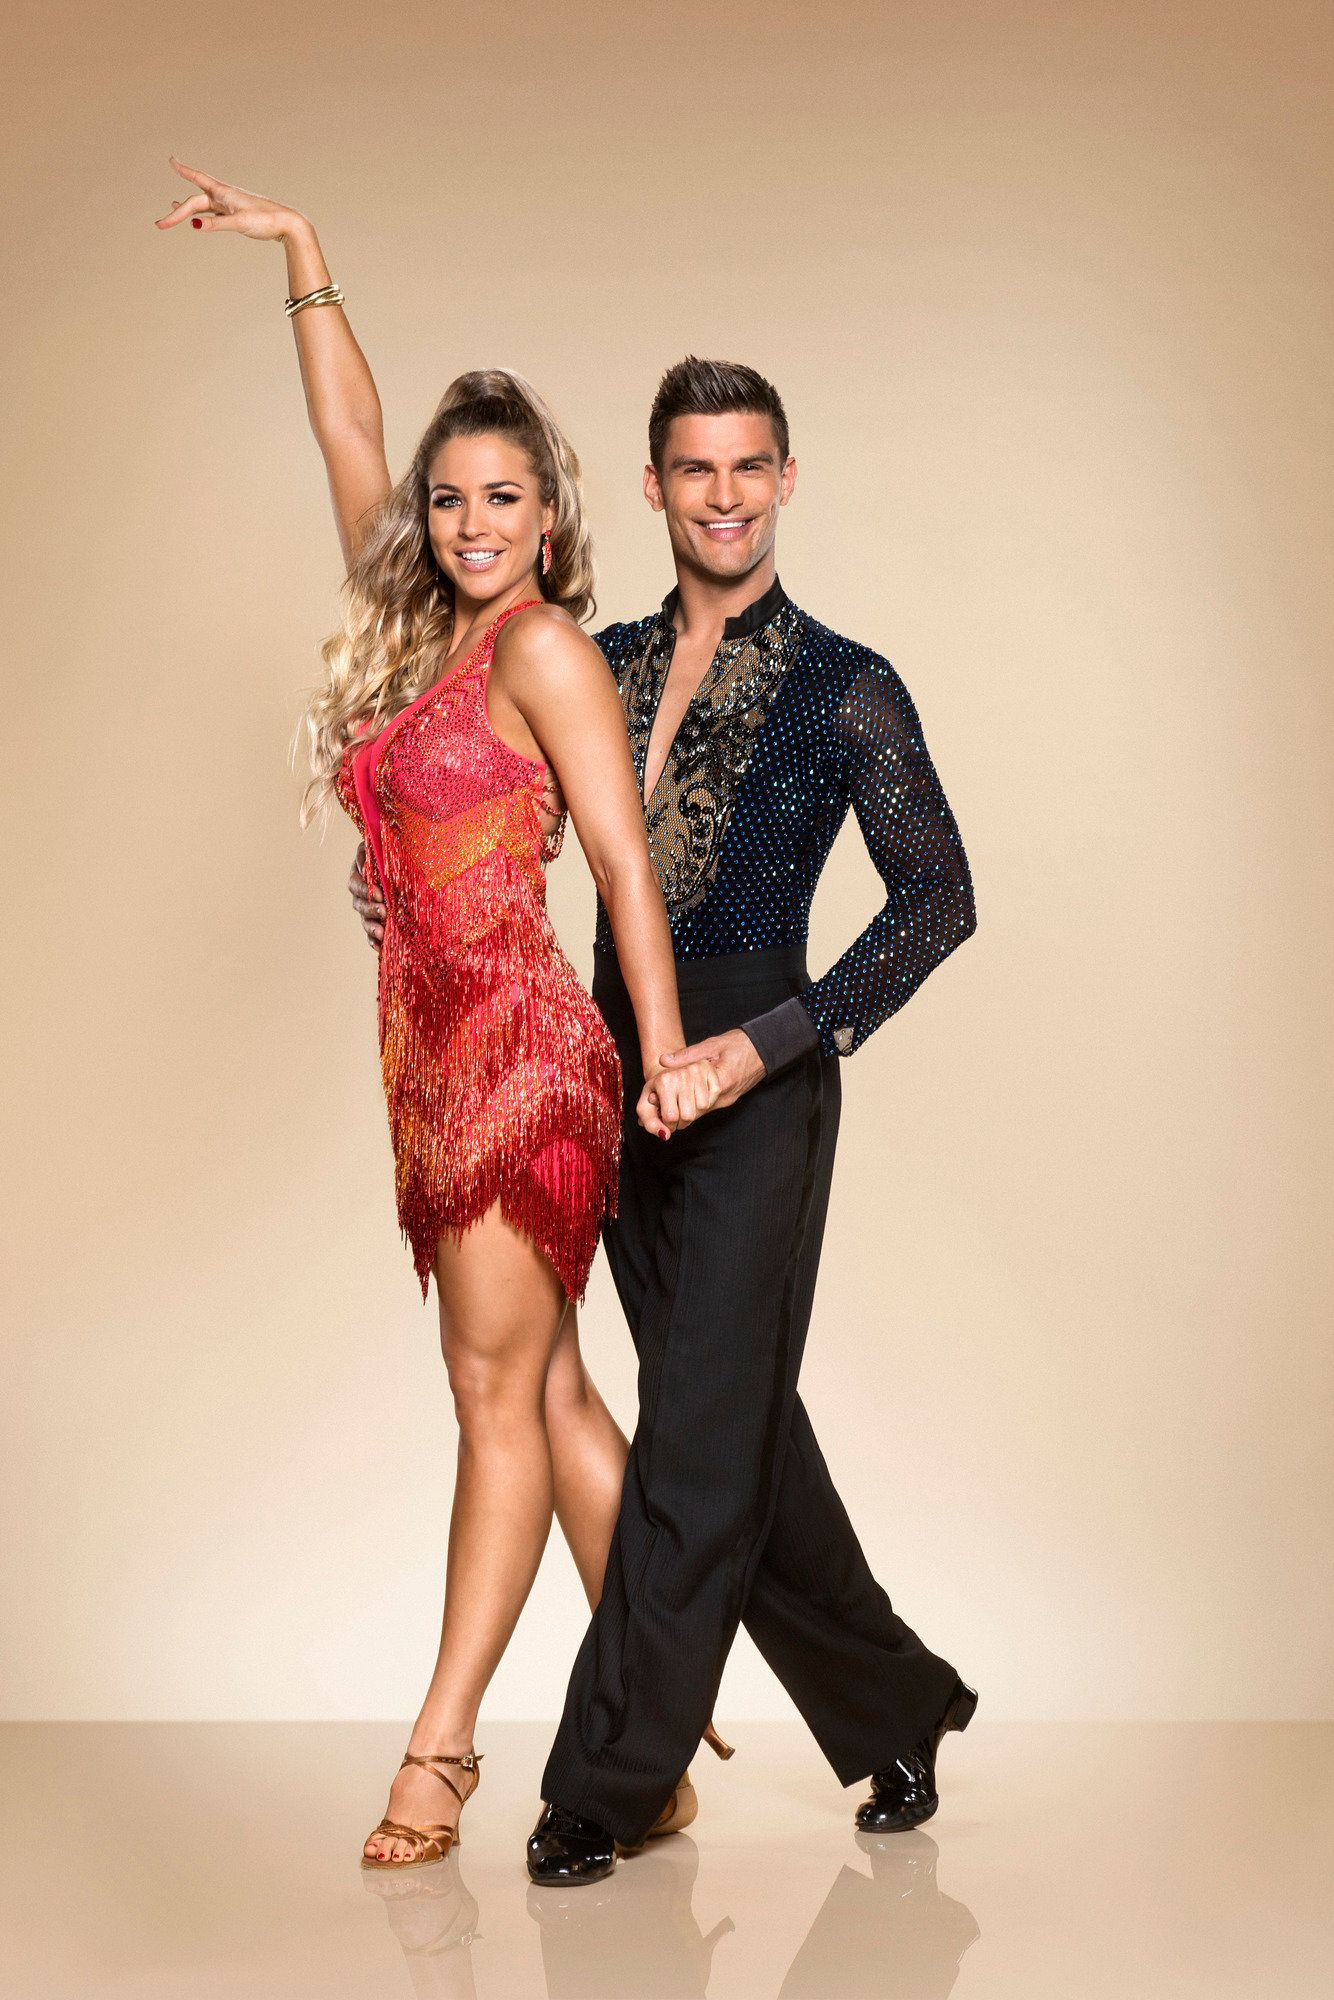 Come Strictly On Dancing Is Who Who Dating